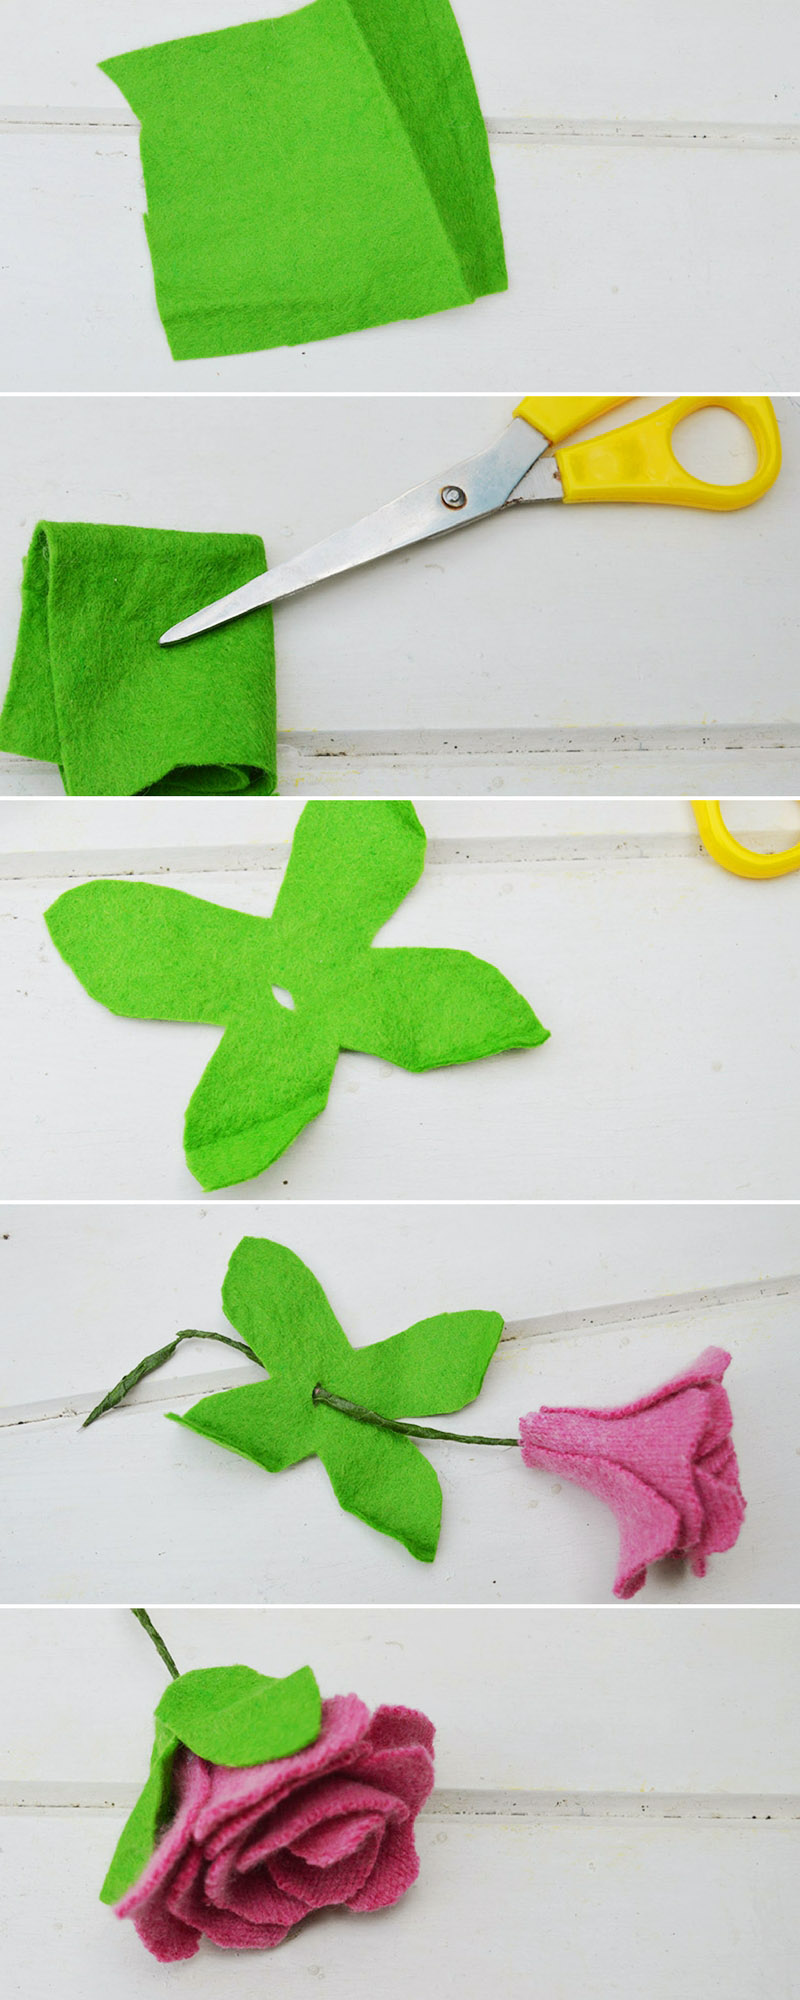 Making felt leaf for sweater roses